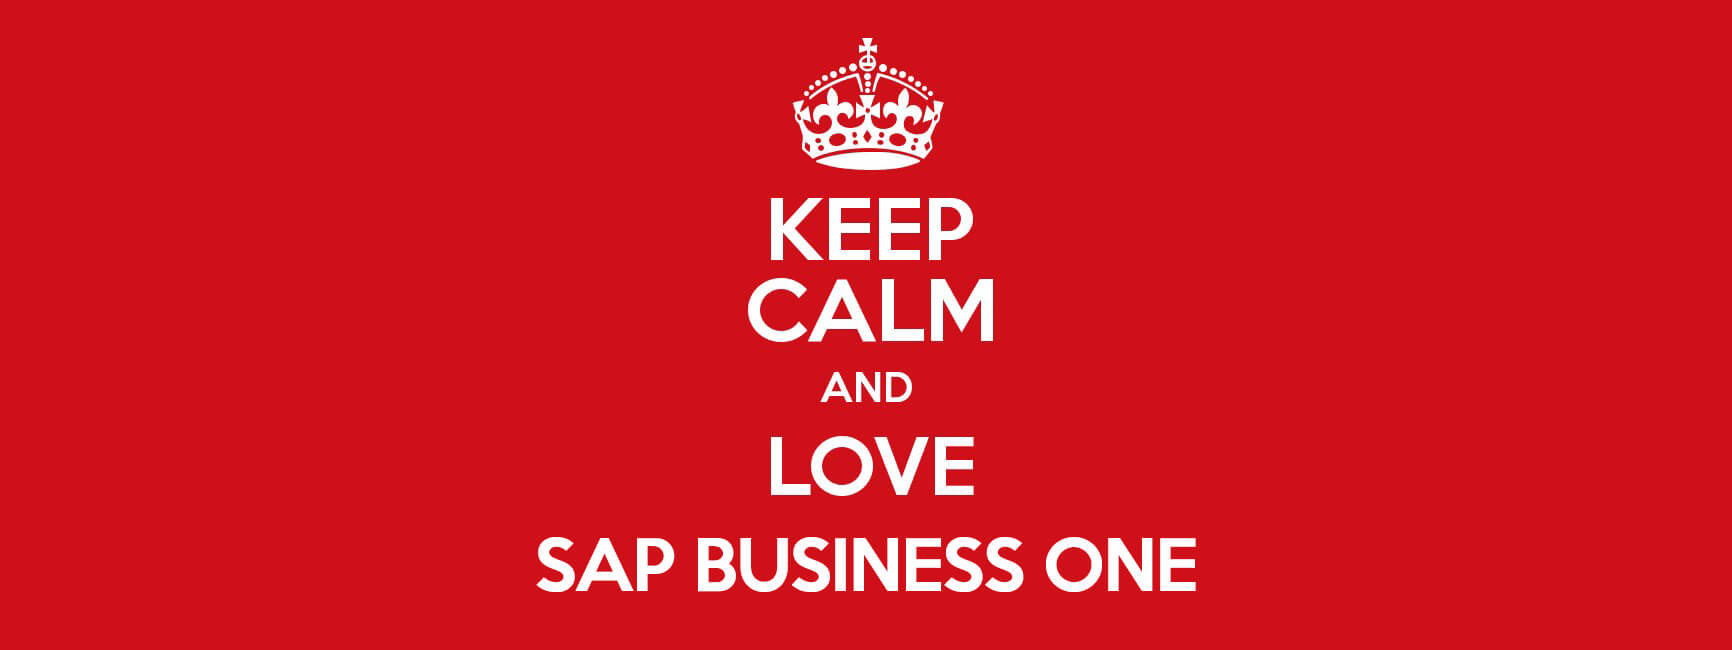 amor-sap-business-one-corponet